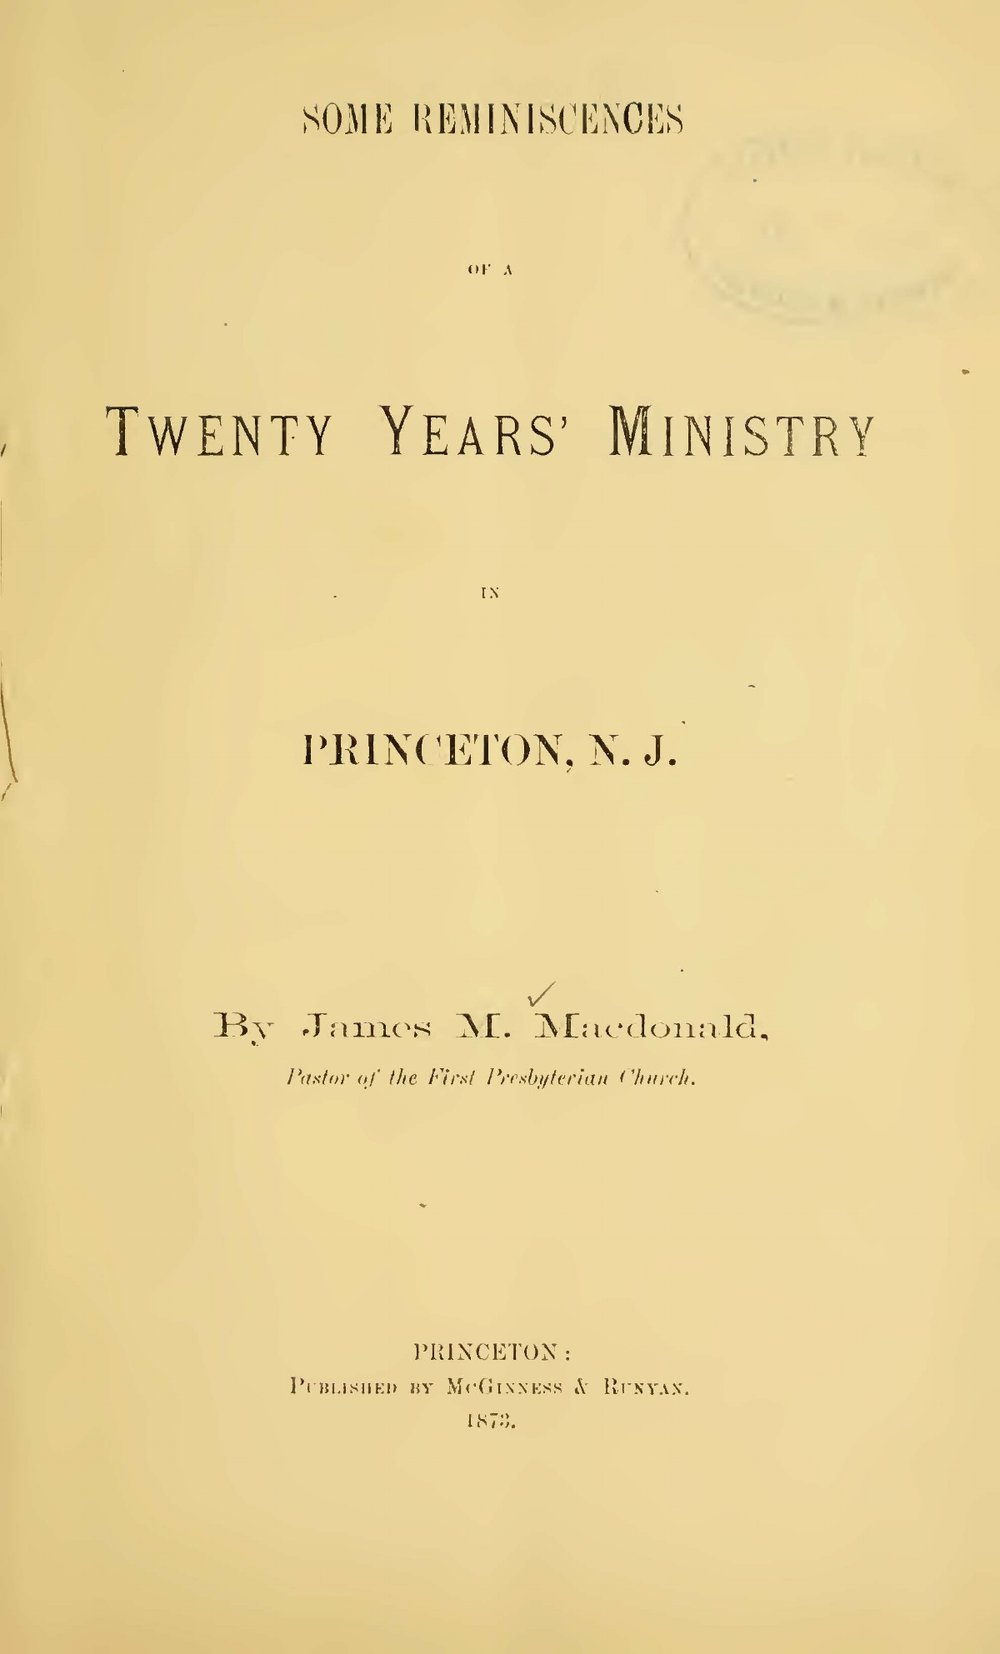 McDonald, James Madison, Some Reminiscences of a Twenty Years' Ministry in Princeton, N.J. Title Page.jpg